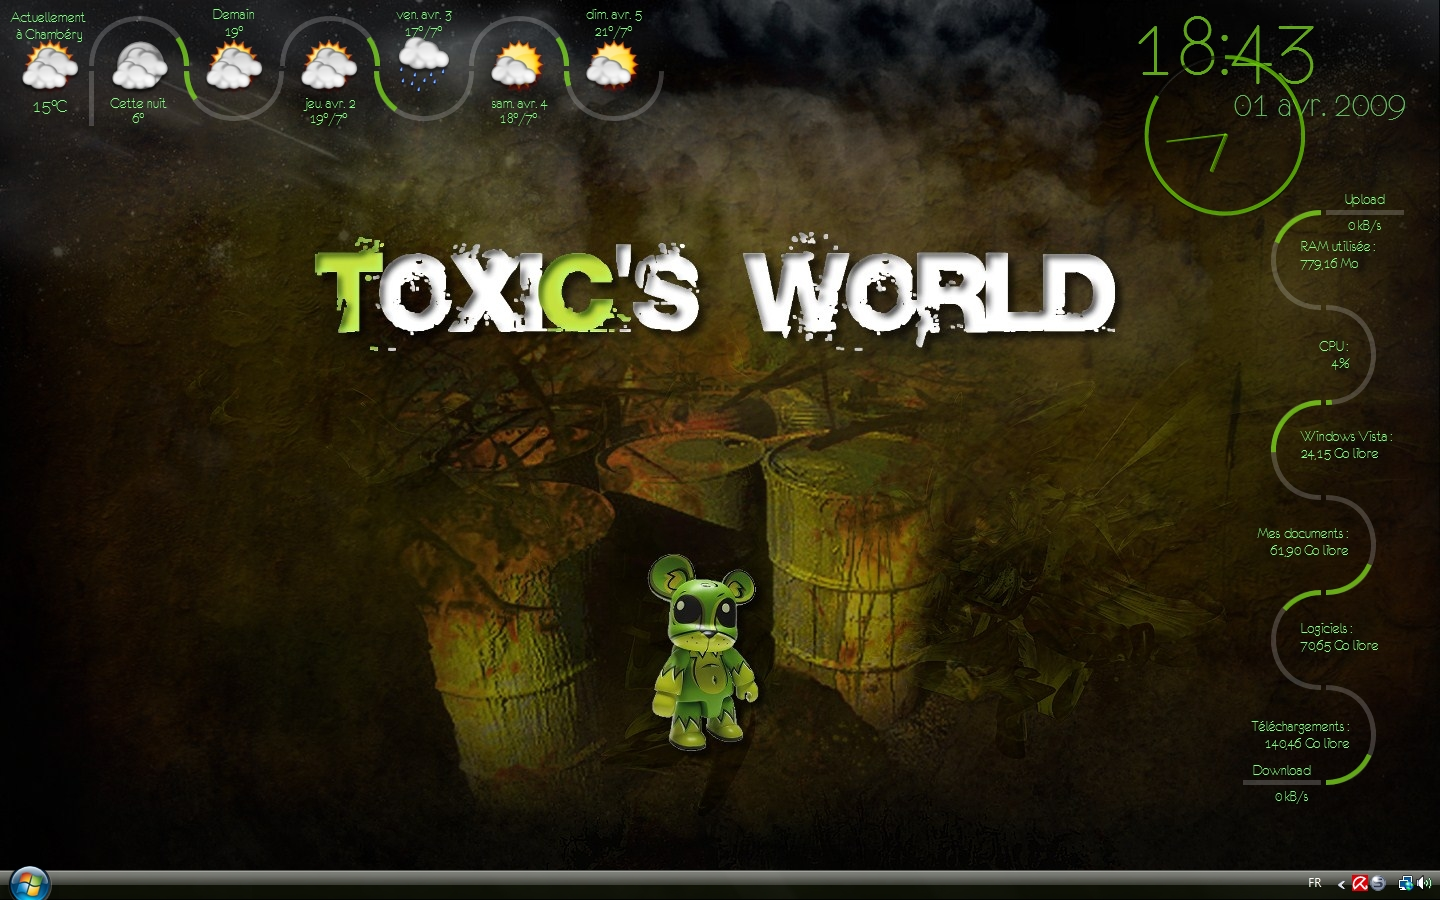 Title: My ToXiC's World